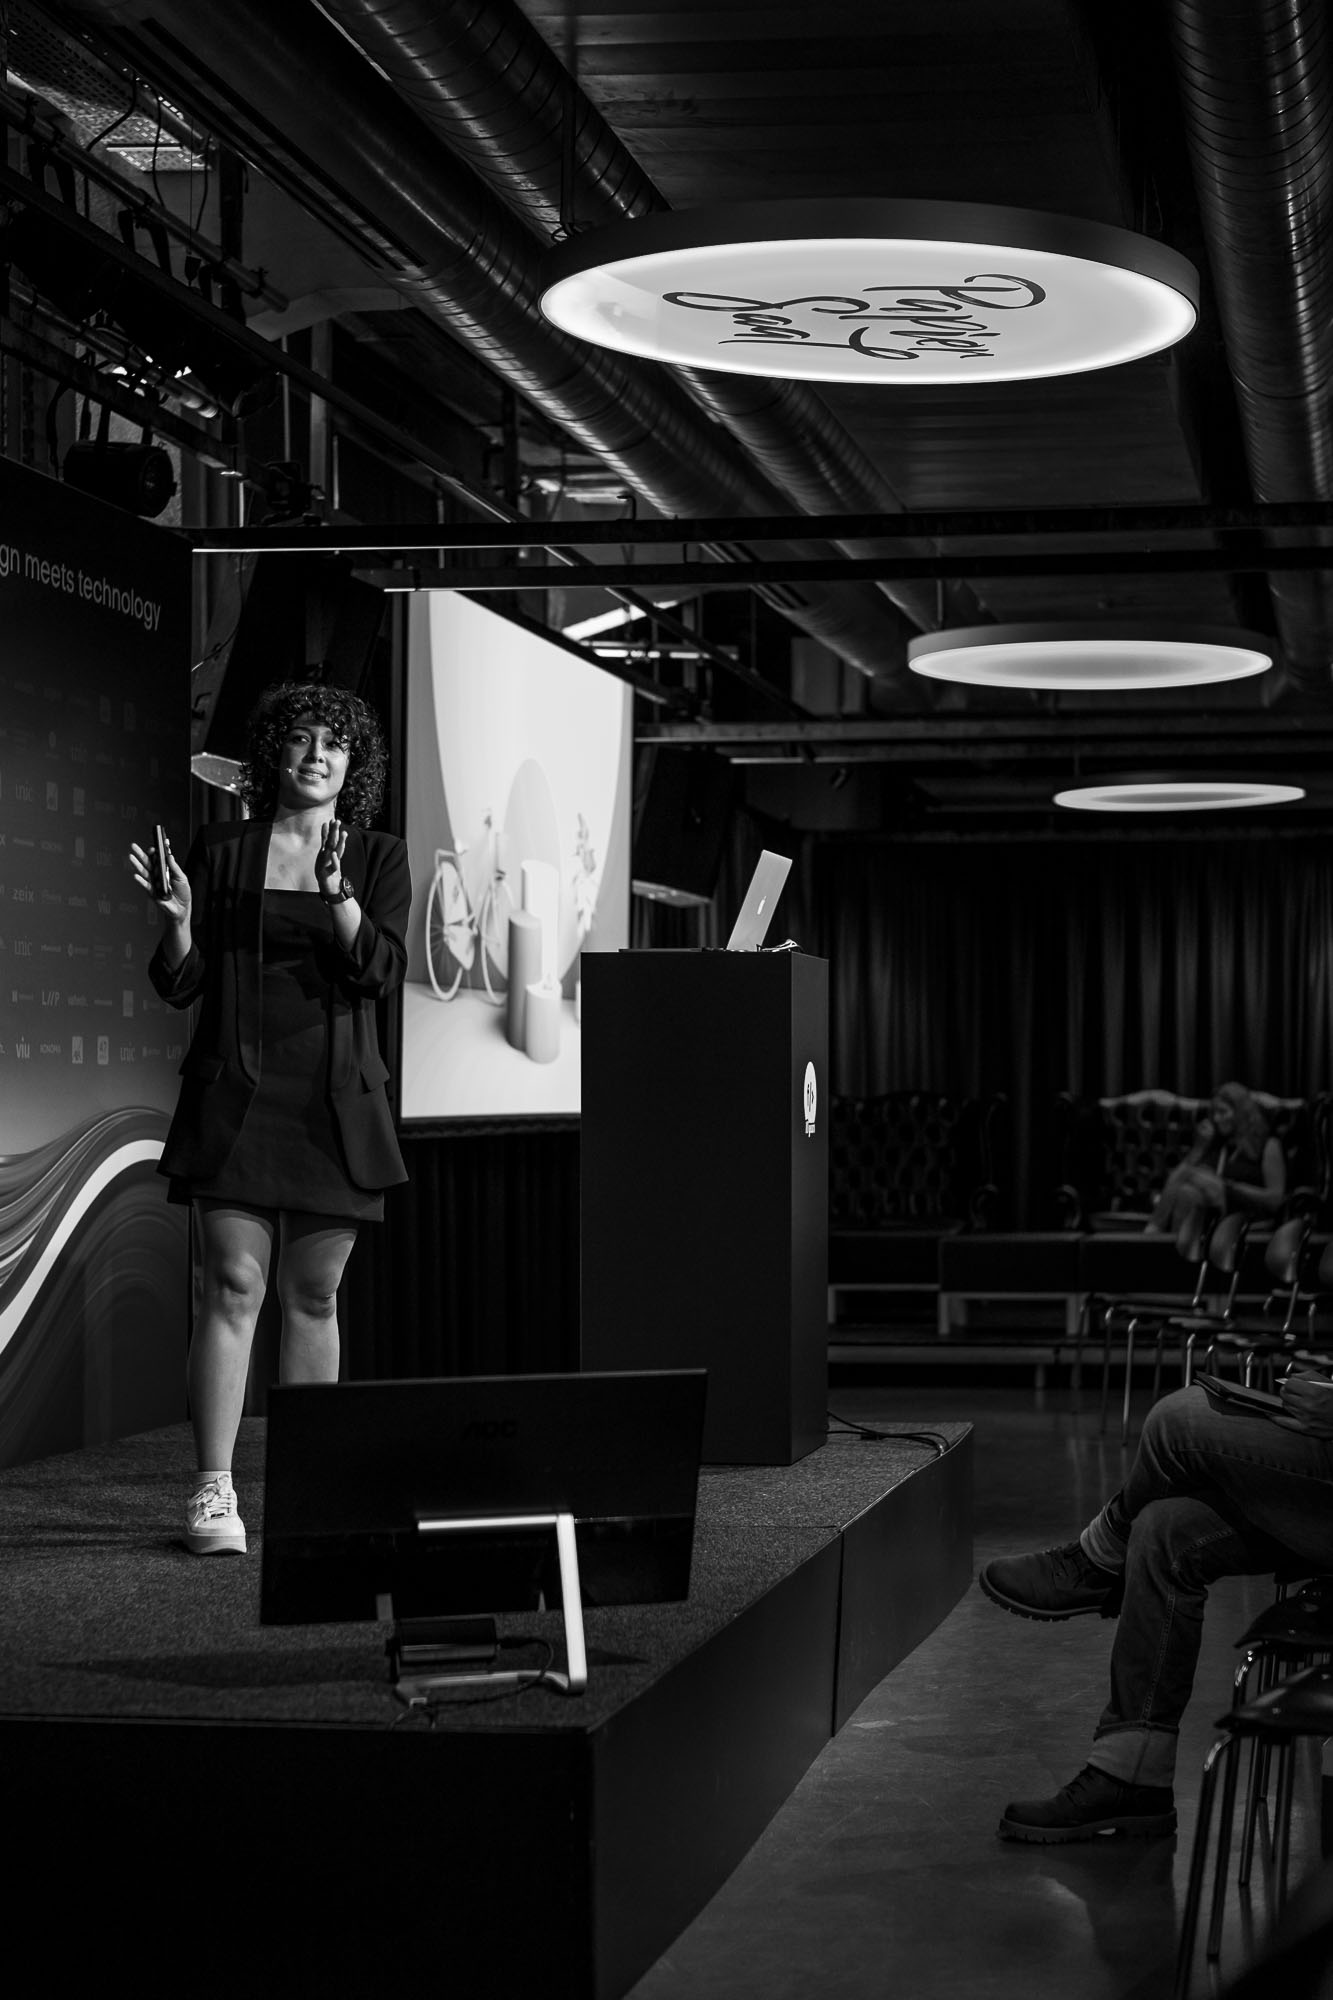 Raquel Fernandez Caamano on stage at Front Conference 2021